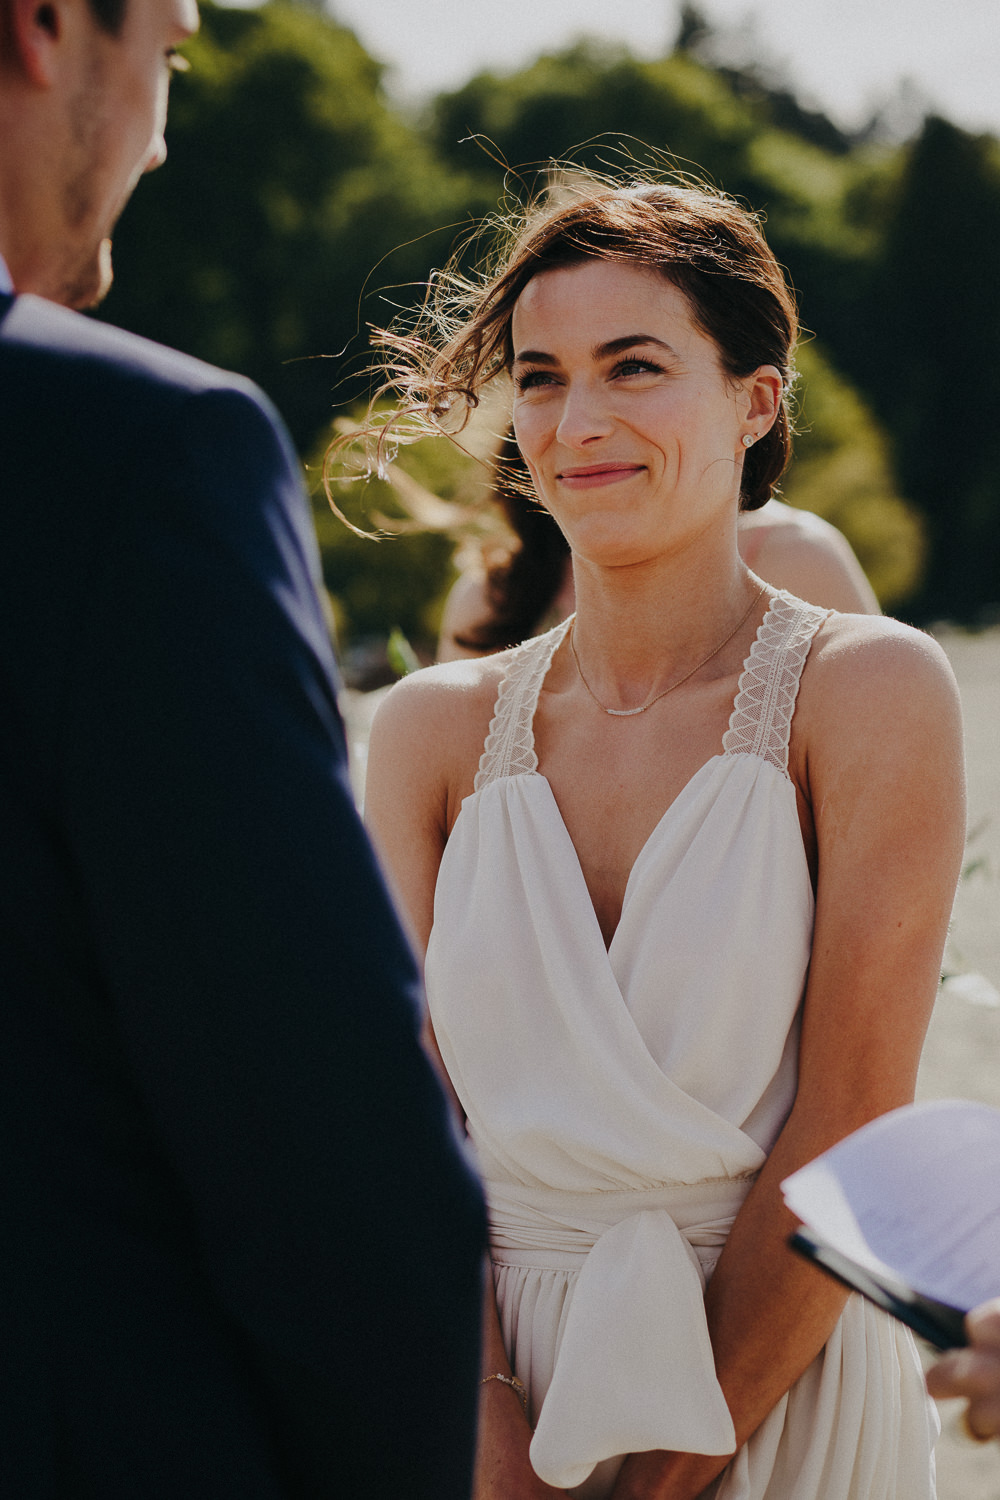 the bride smiling at the groom